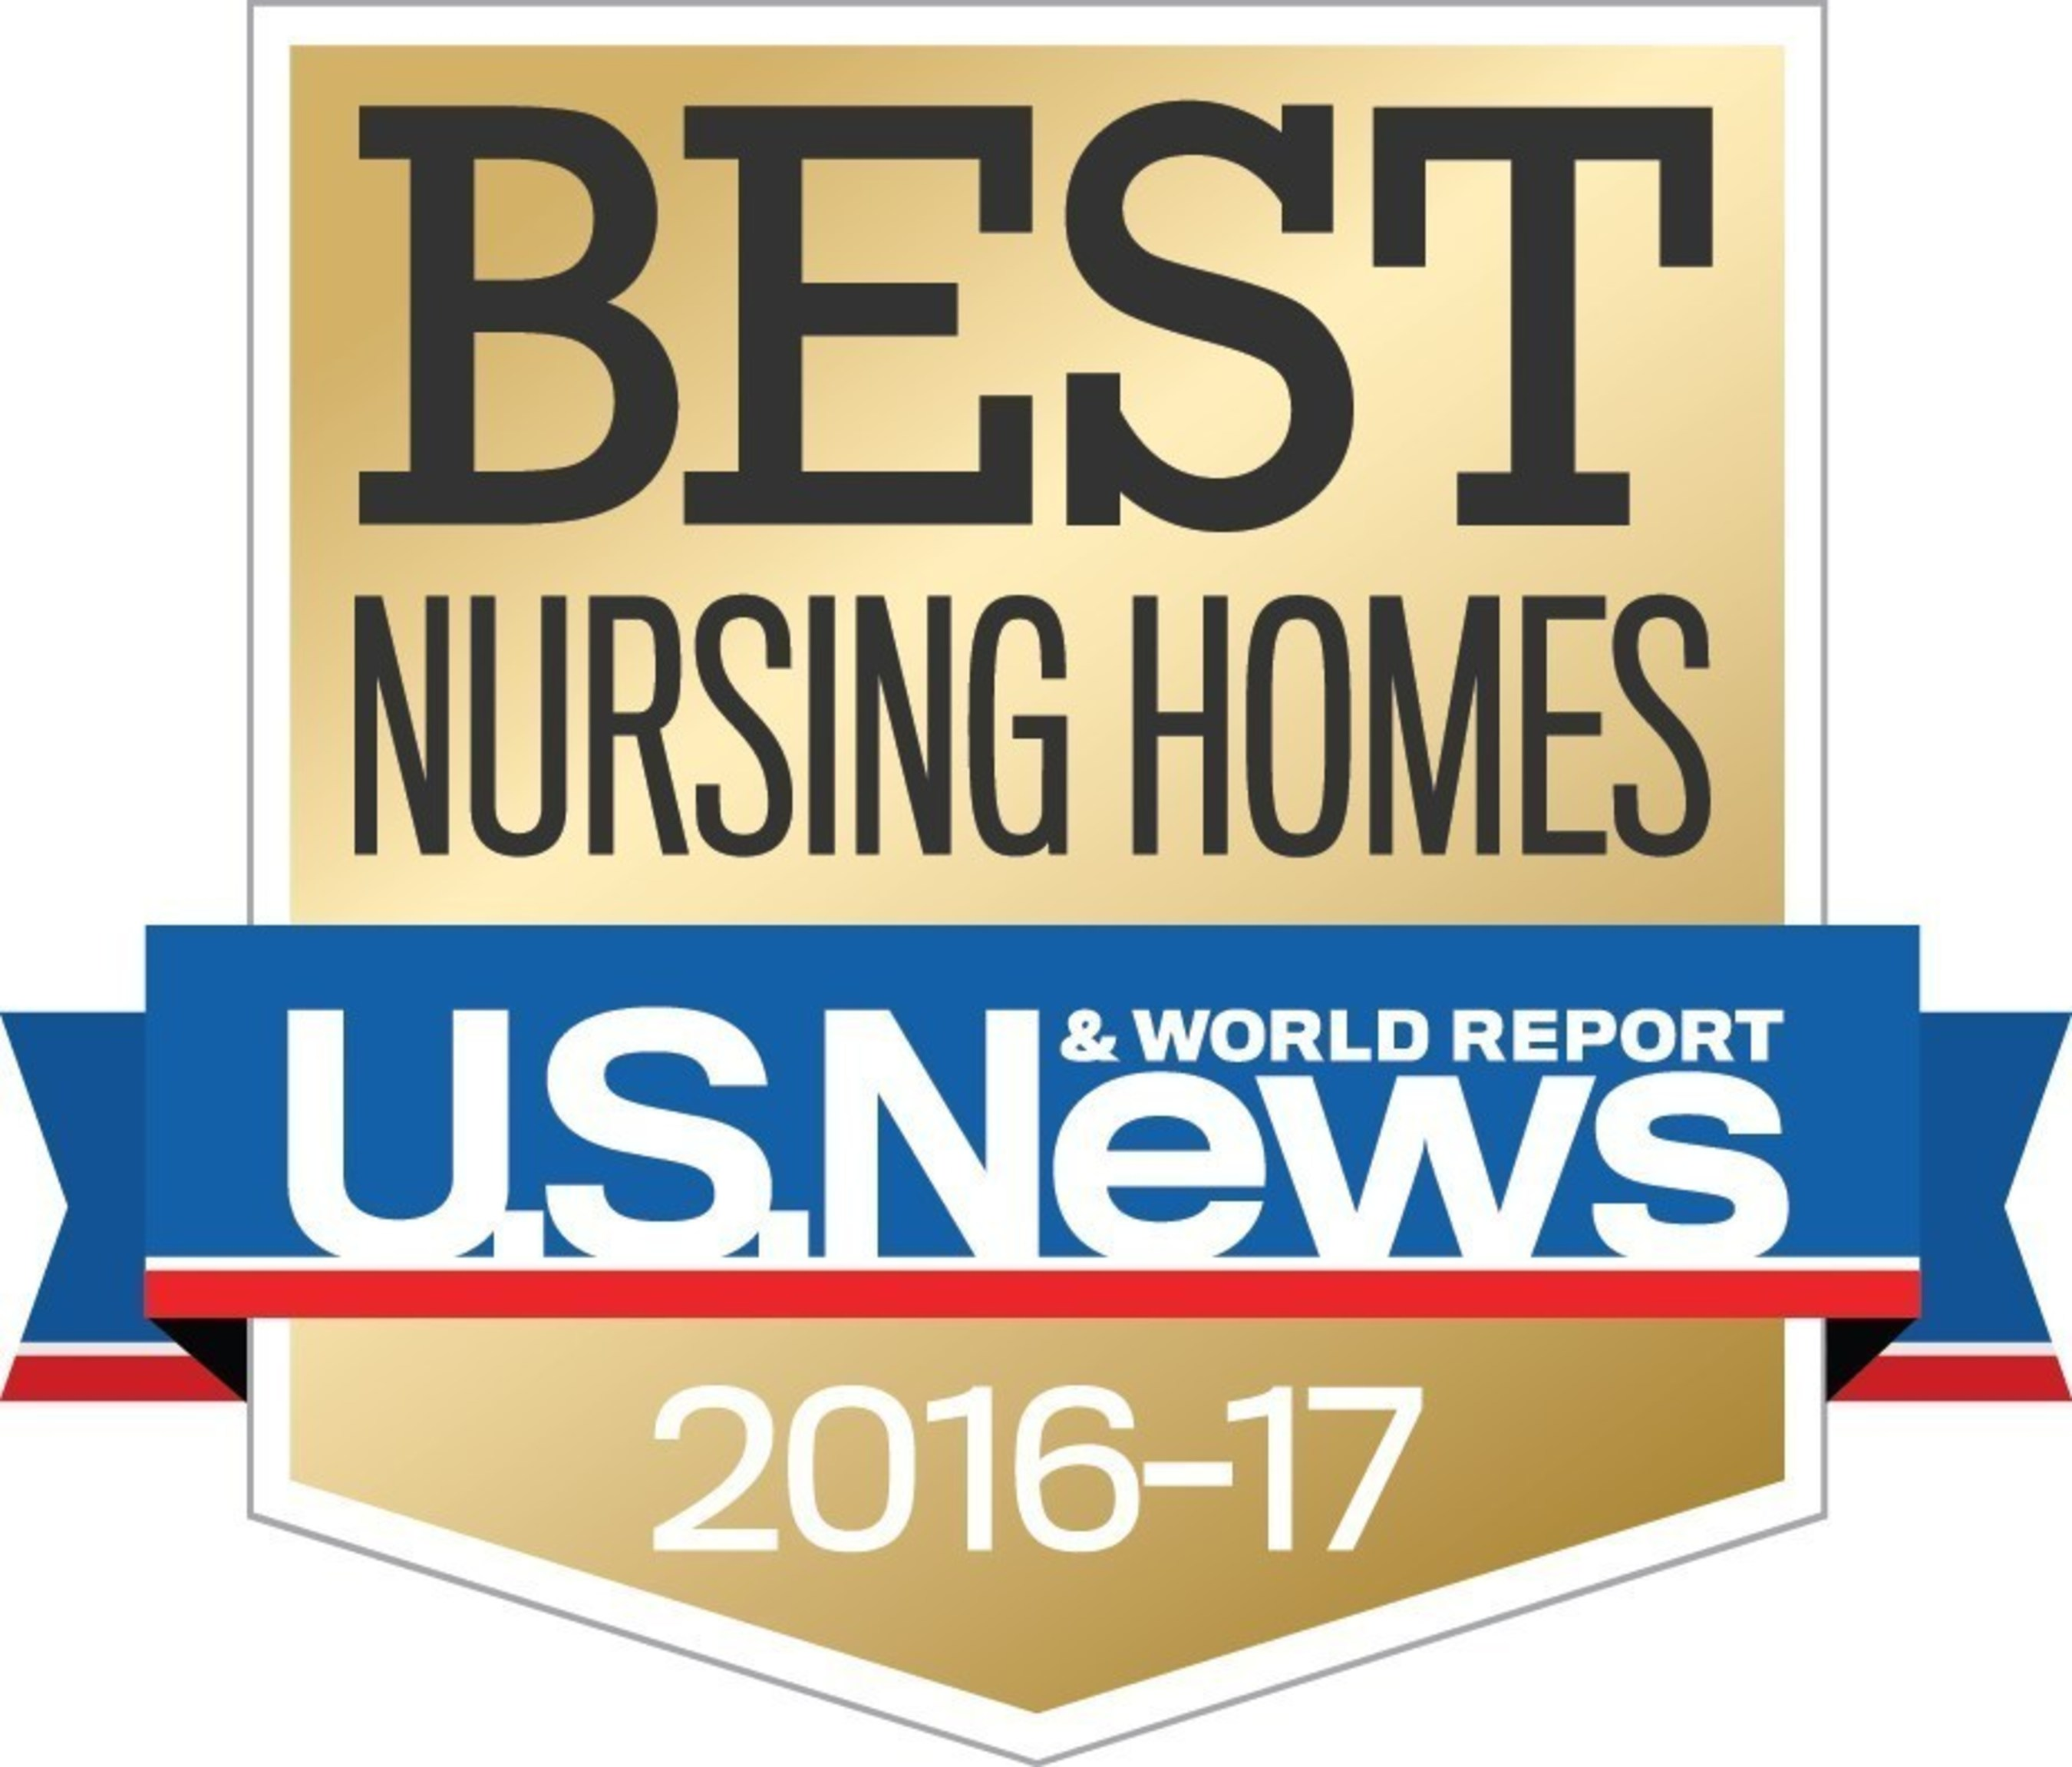 10 PruittHealth centers rank among U.S. News & World Report's Best Nursing Homes list for 2016-17.